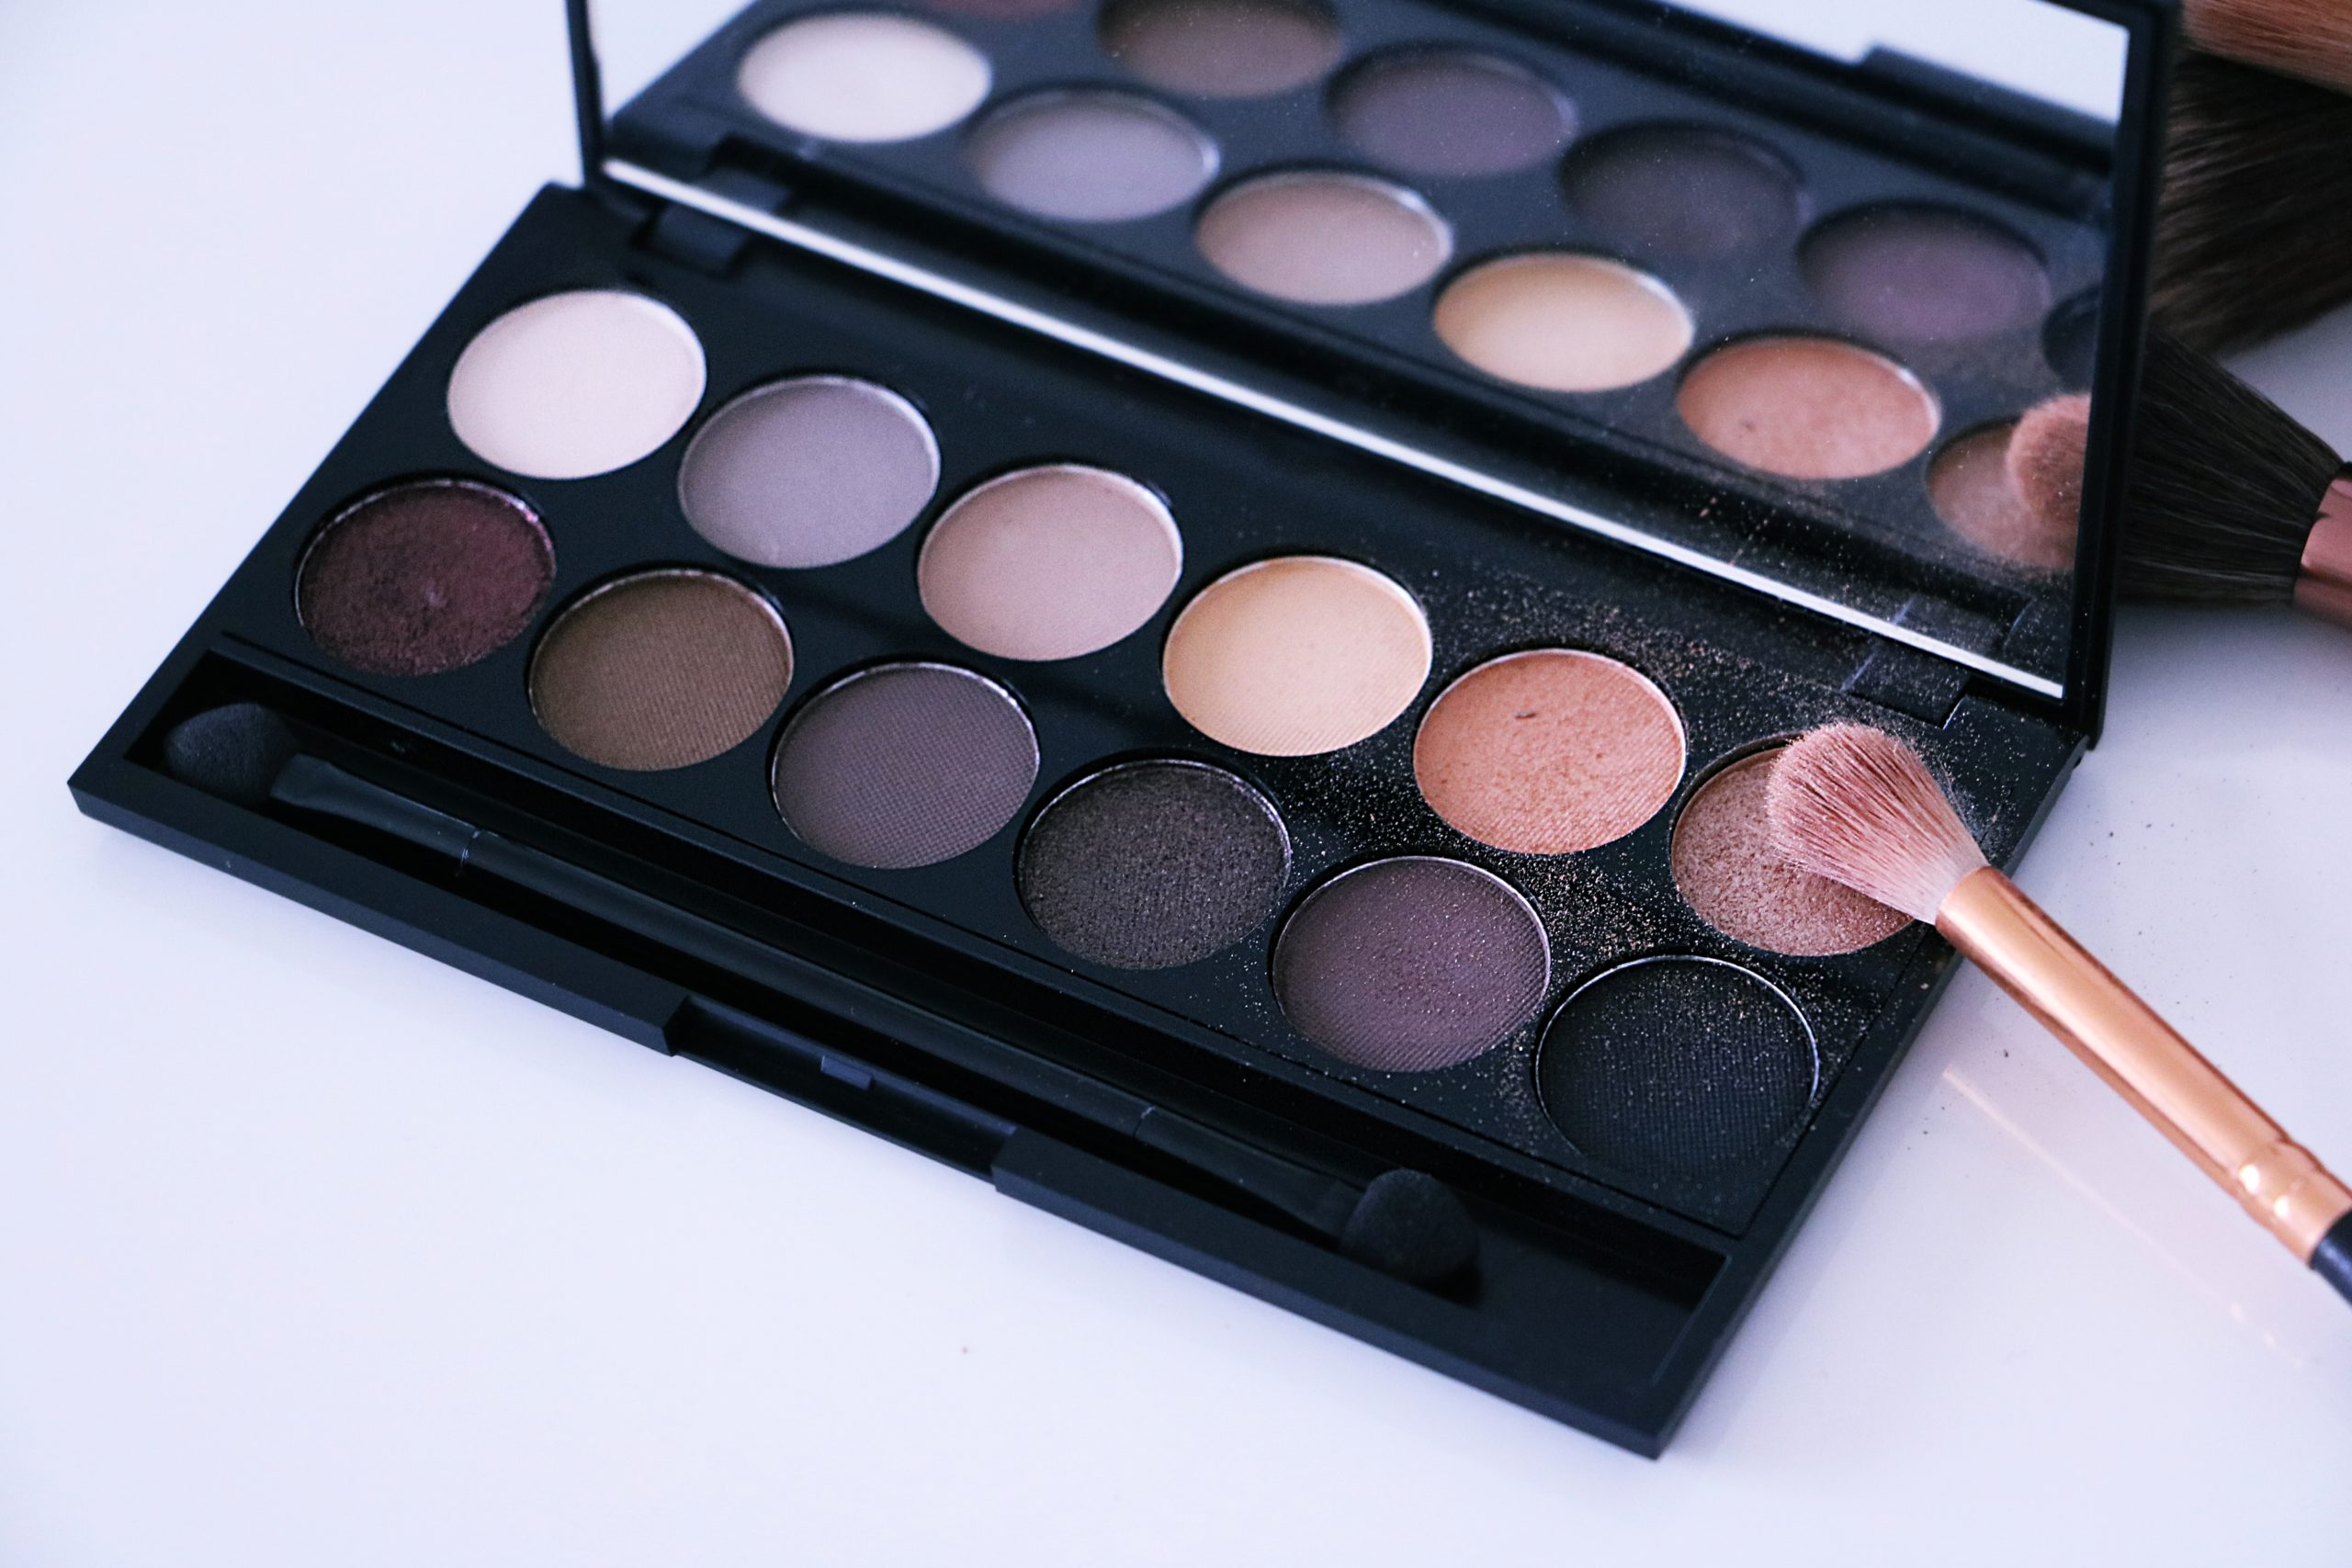 Sleek Makeup iDivine Palette Review